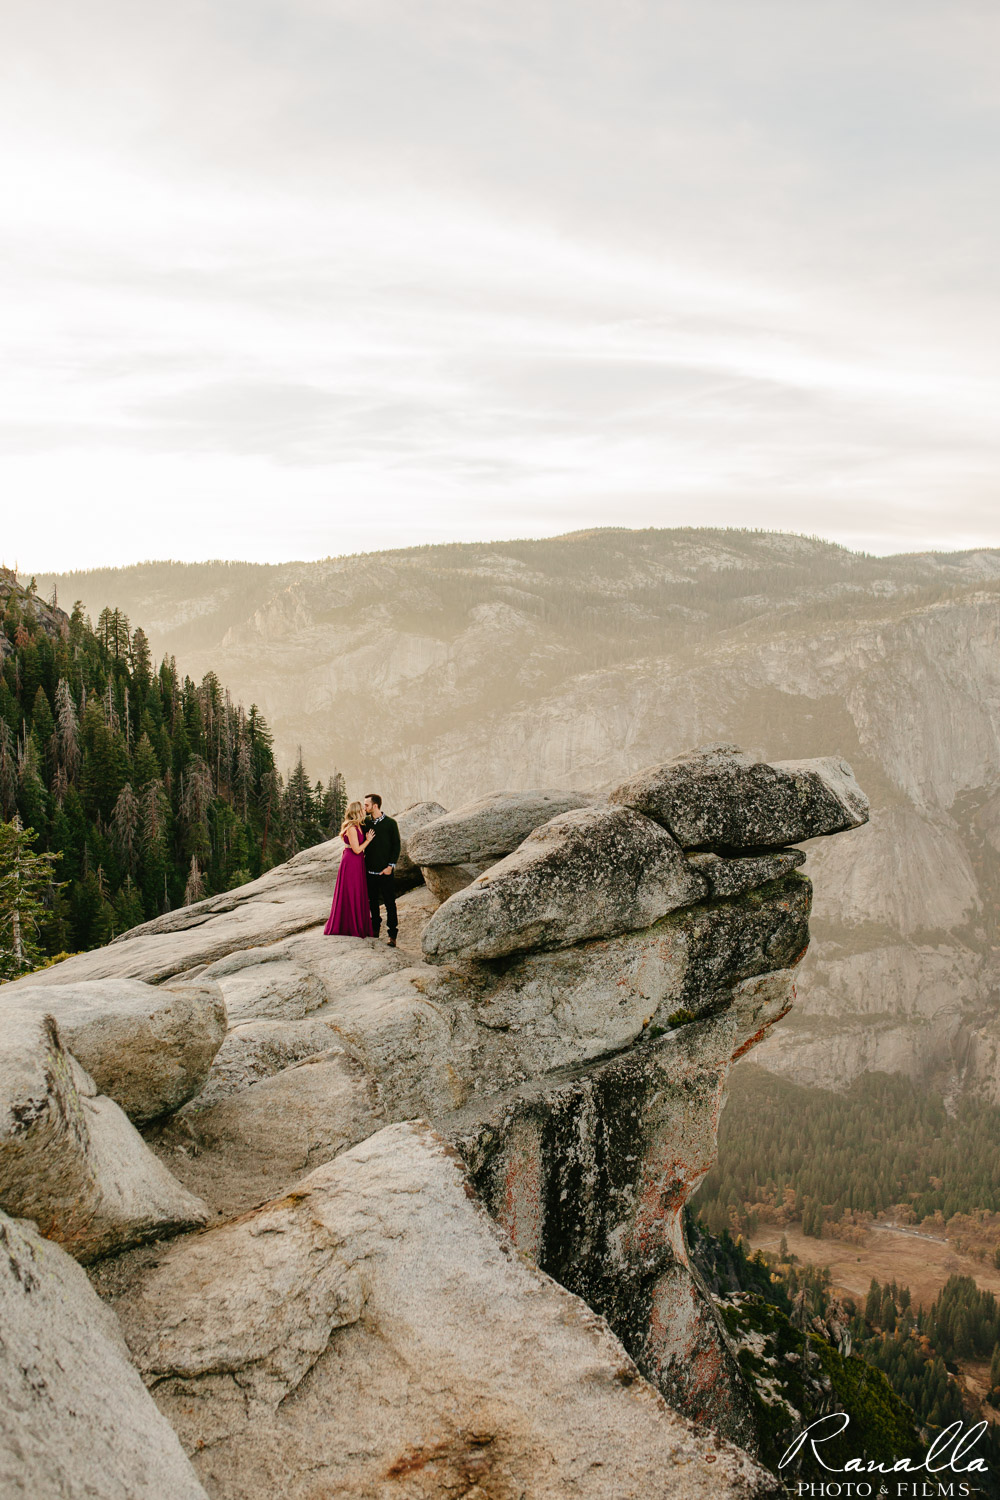 Yosemite Engagement Session-Glacier Point Engaegment Photos-Ranalla Photo & Films-11.jpg